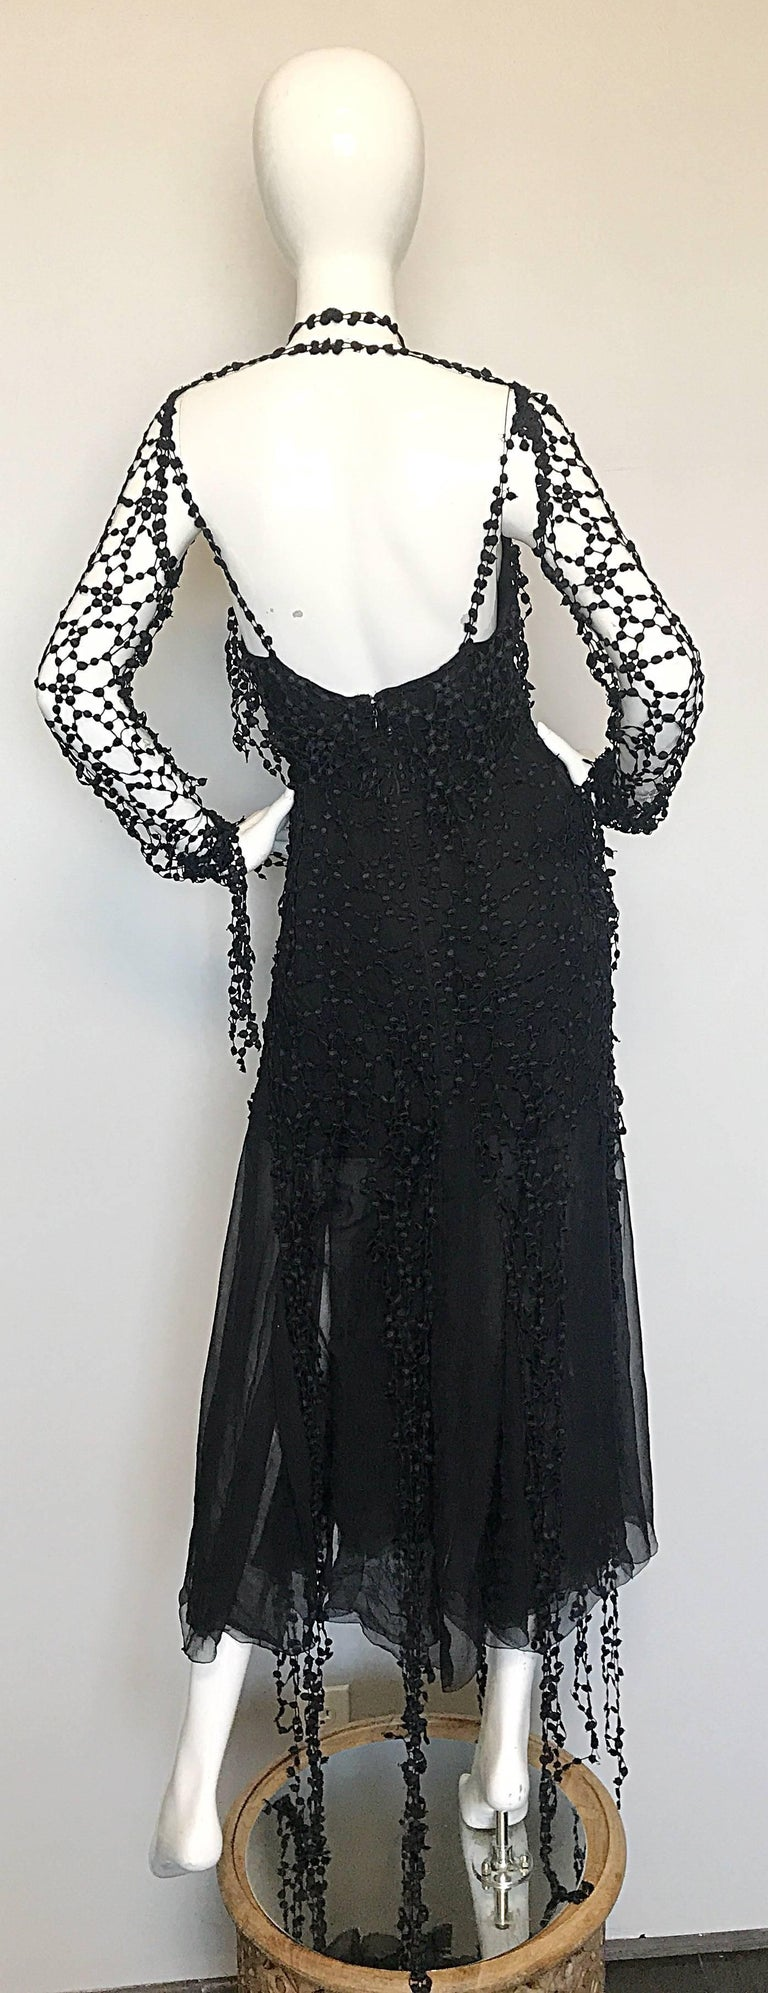 1990s Karl Lagerfeld Vintage ' Spiderweb ' Black Silk Chiffon Vintage 90s Dress In Excellent Condition For Sale In San Francisco, CA